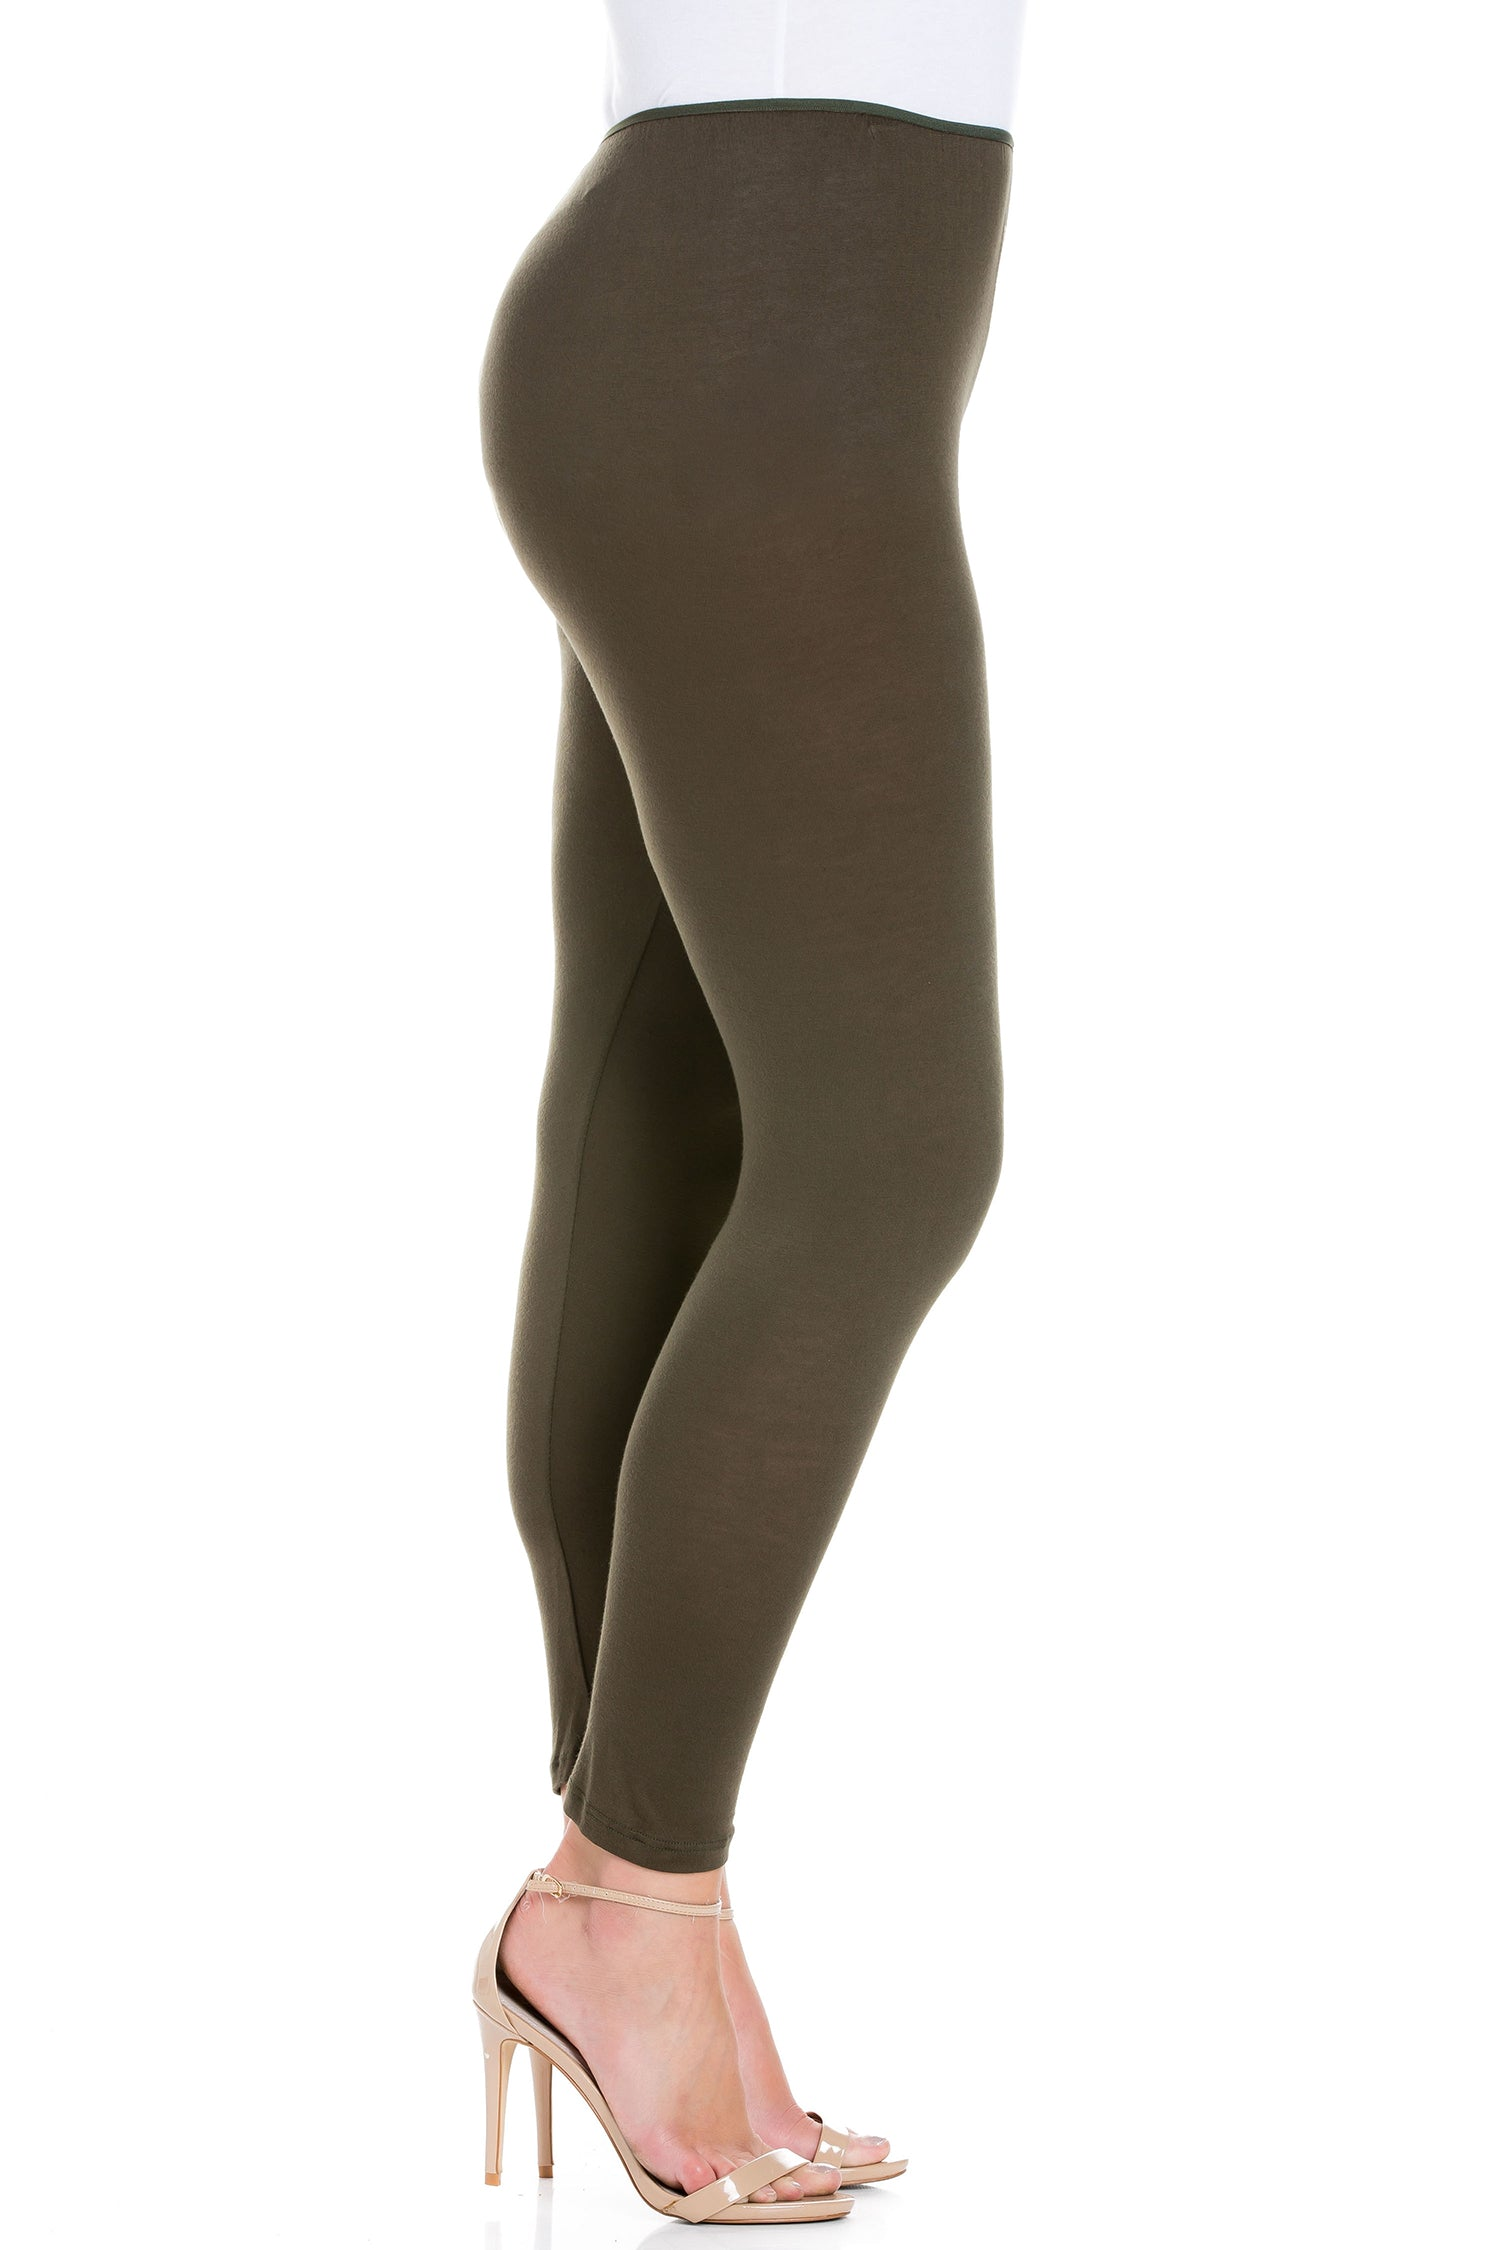 24seven Comfort Apparel Comfortable Ankle Length Plus Size Leggings-PANT-24Seven Comfort Apparel-OLIVE-1X-24/7 Comfort Apparel